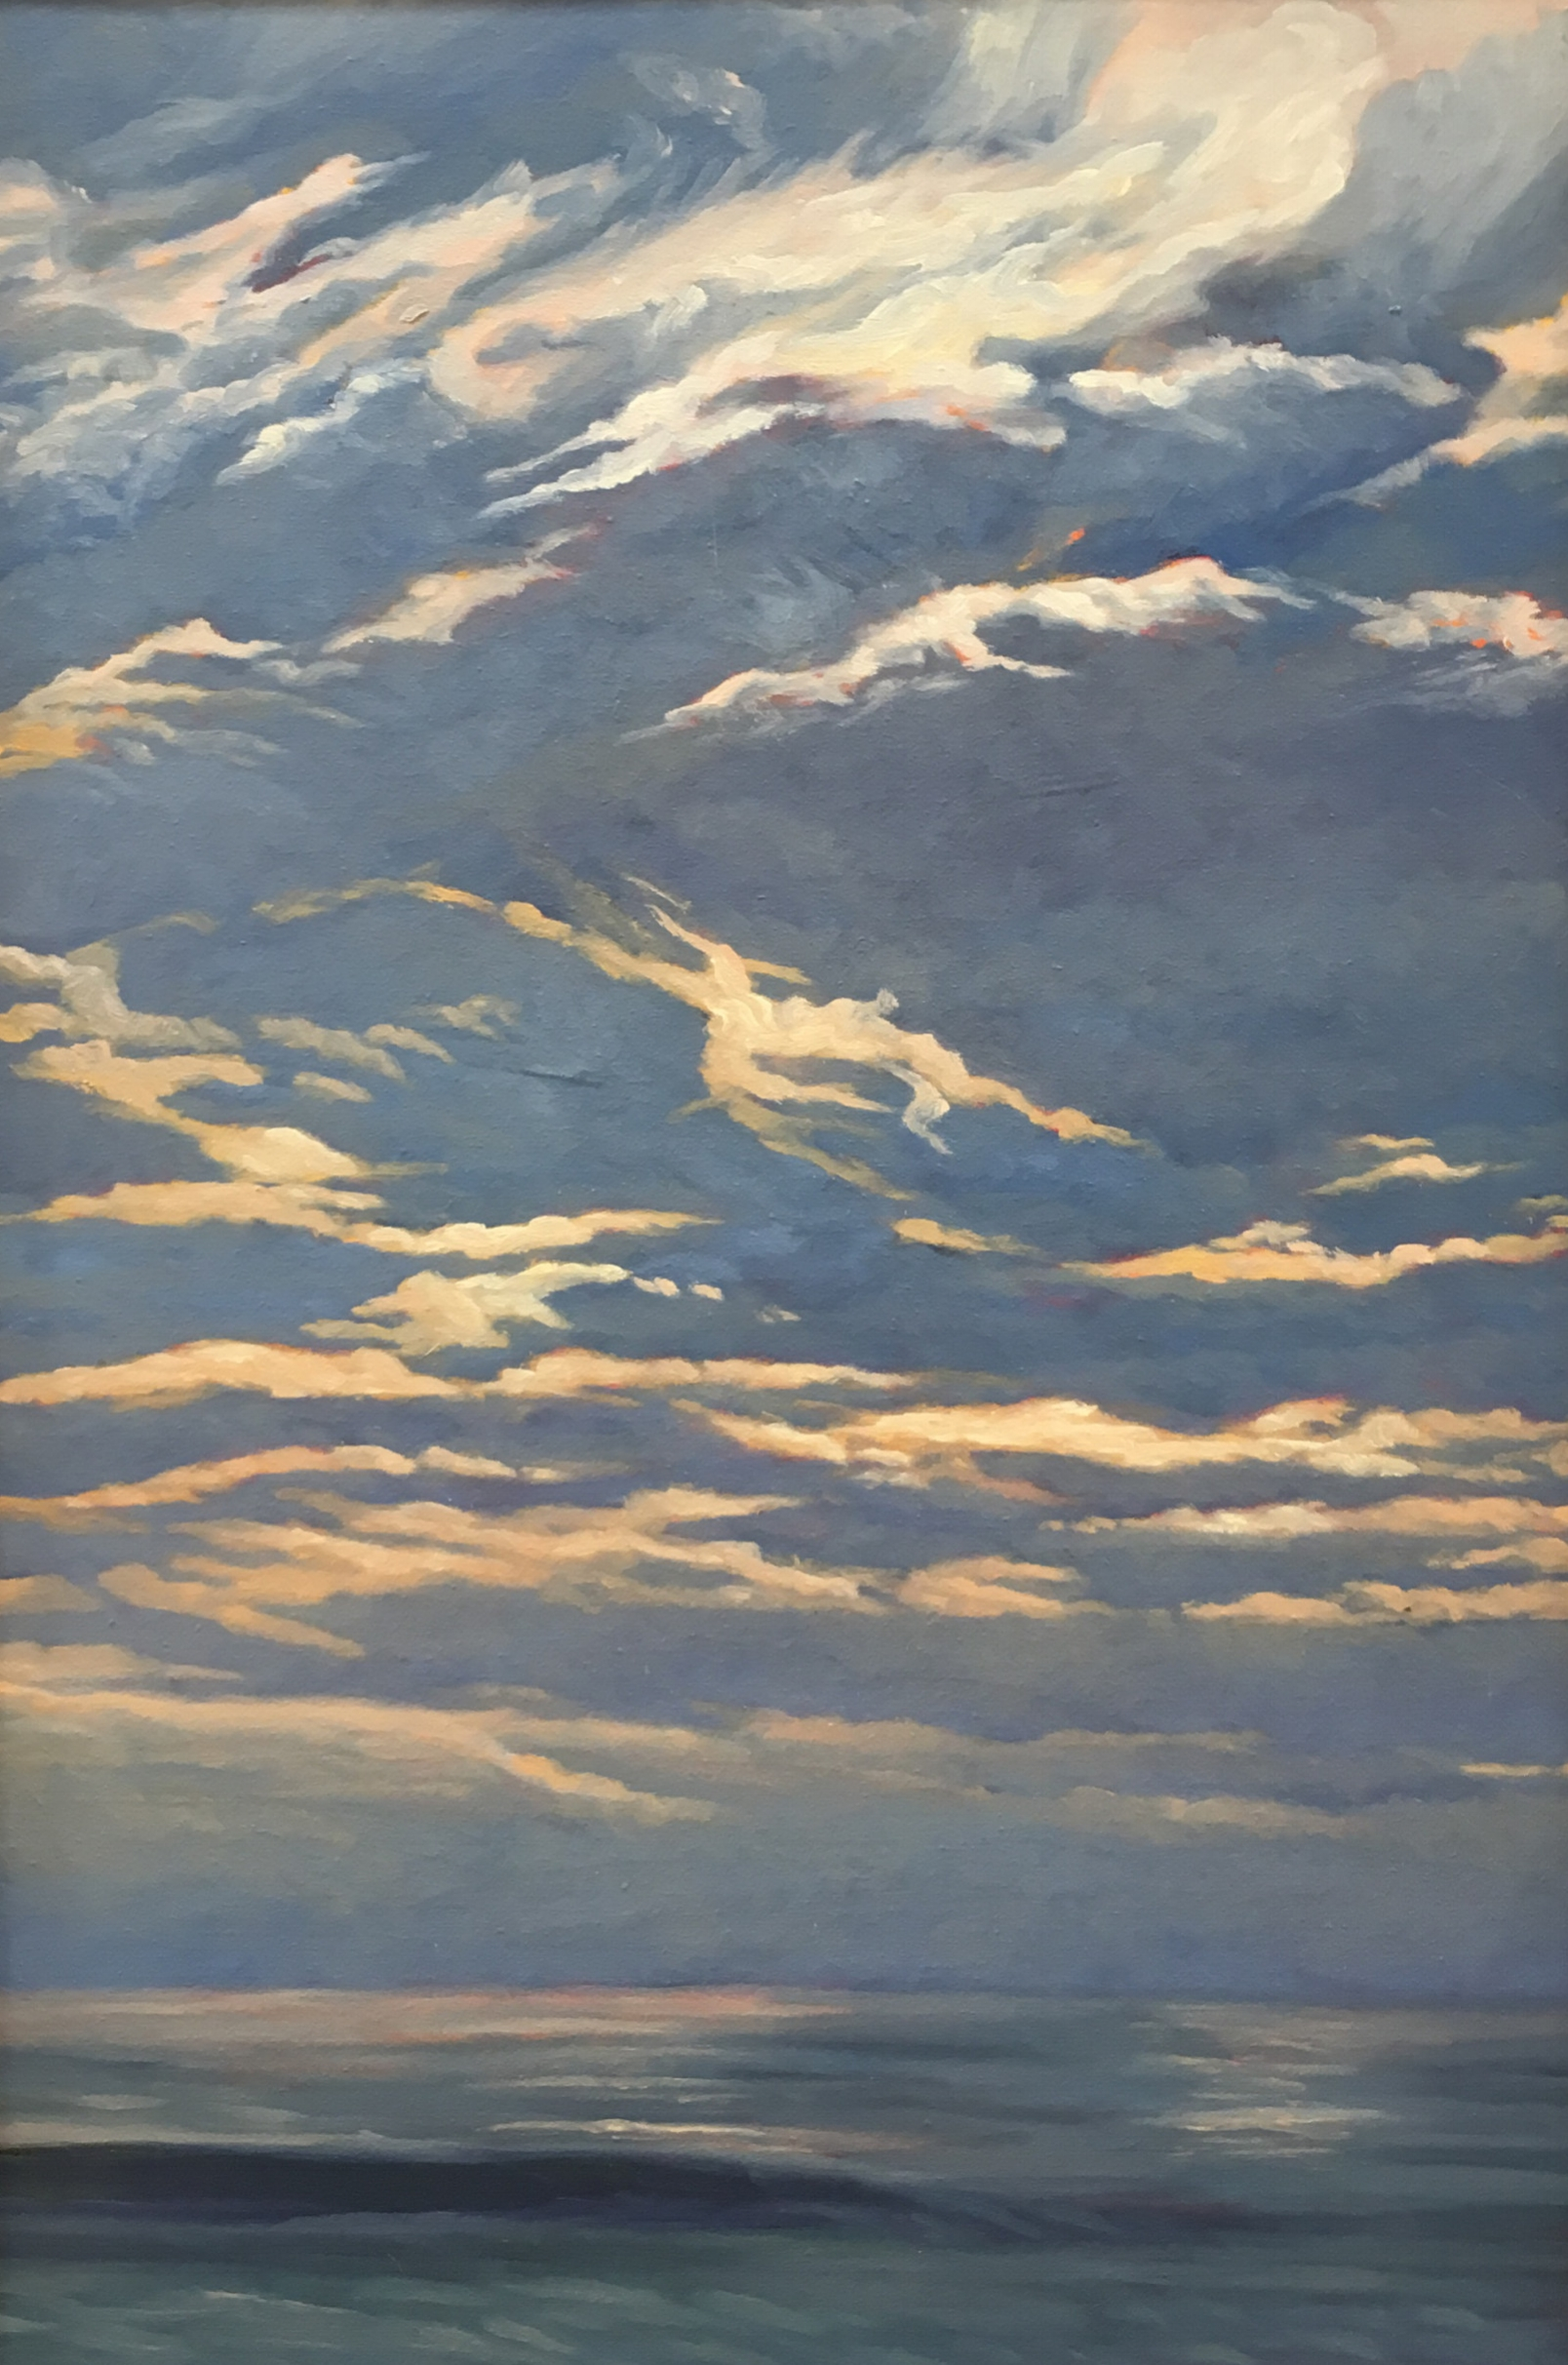 Pacific Overture IV  28x20  Oil on Panel  2002